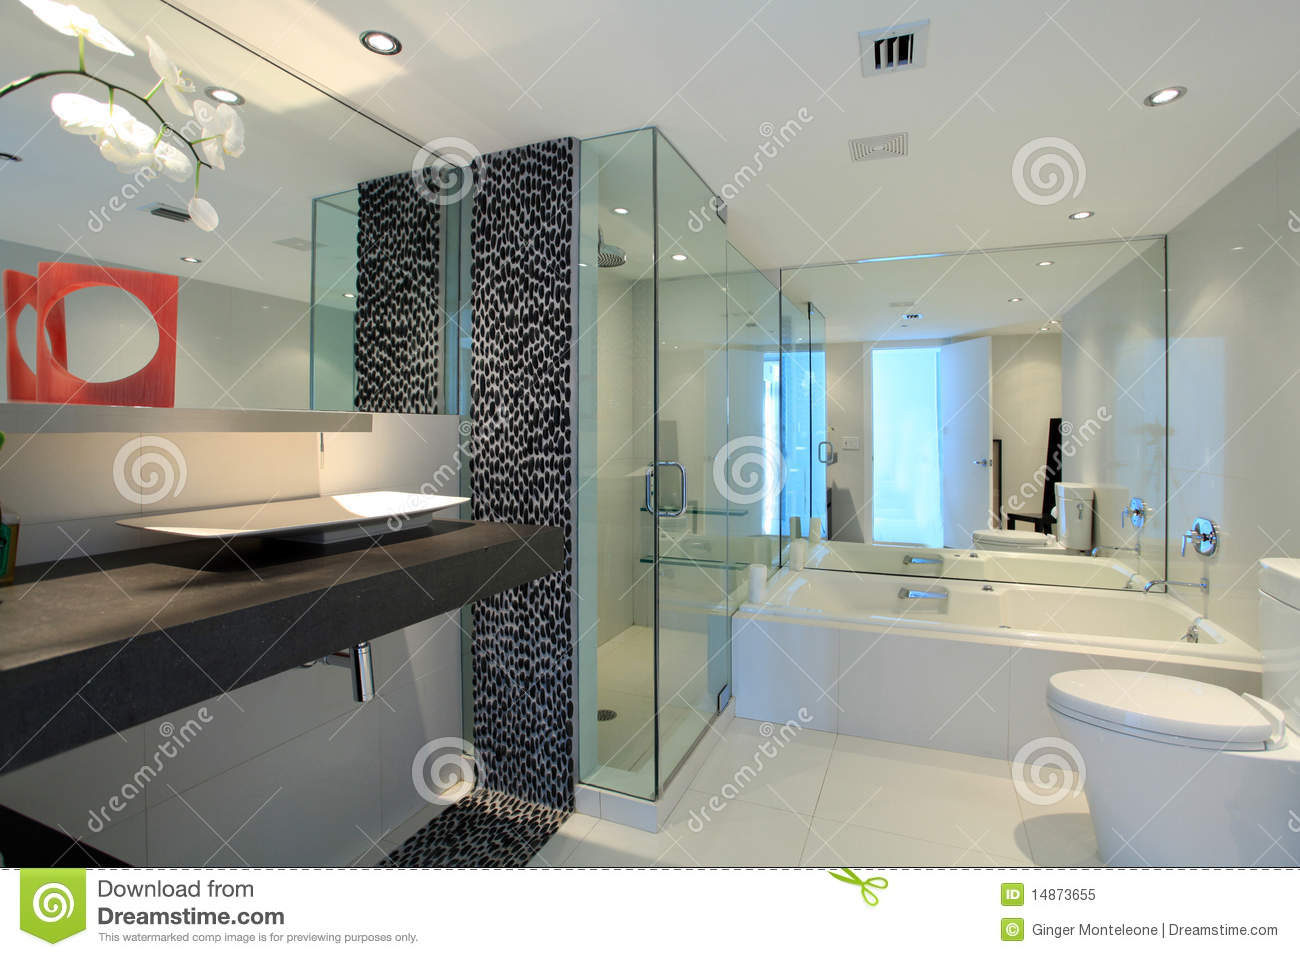 salle de bains contemporaine image stock image du toilette moderne 14873655. Black Bedroom Furniture Sets. Home Design Ideas